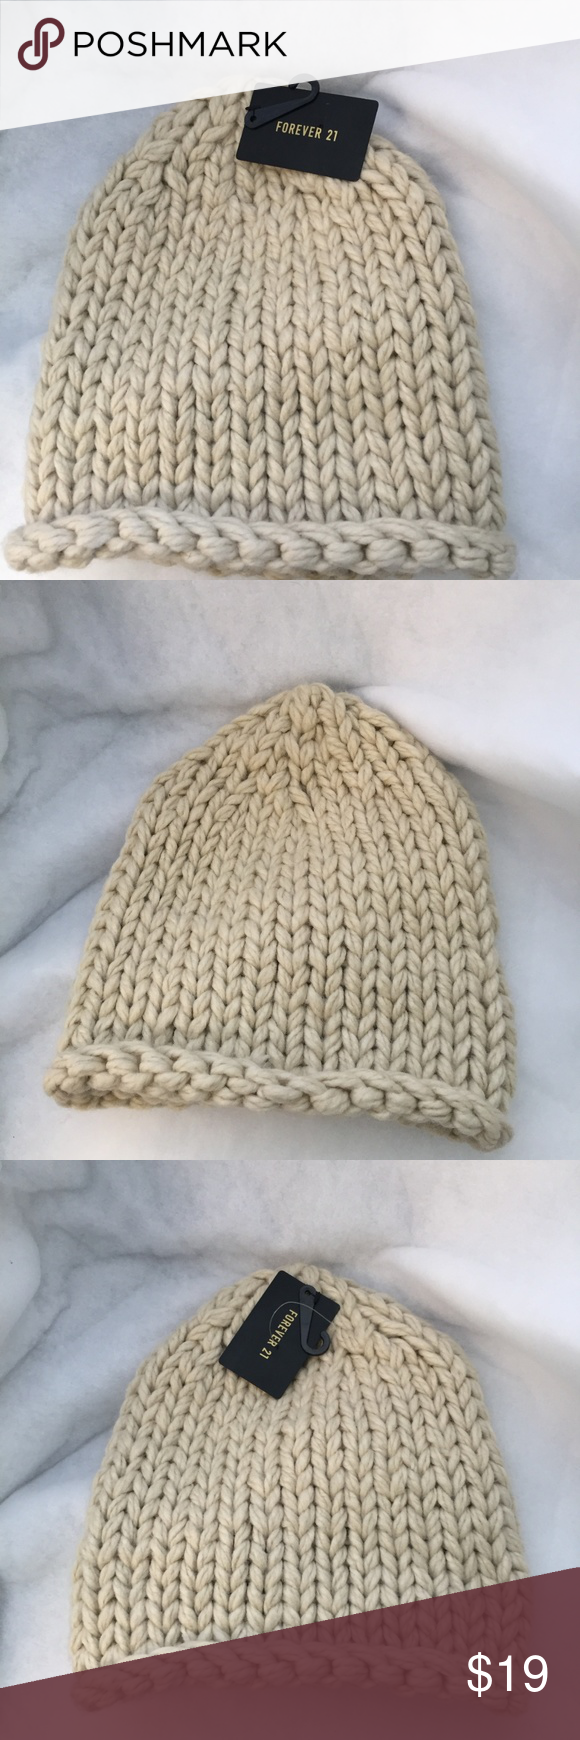 1dde2214ffb51 Forever 21 Knit Beanie Winter Hat New Heavy knit Forever 21 beanie hat. New  with tags. Perfect for cold days Forever 21 Accessories Hats